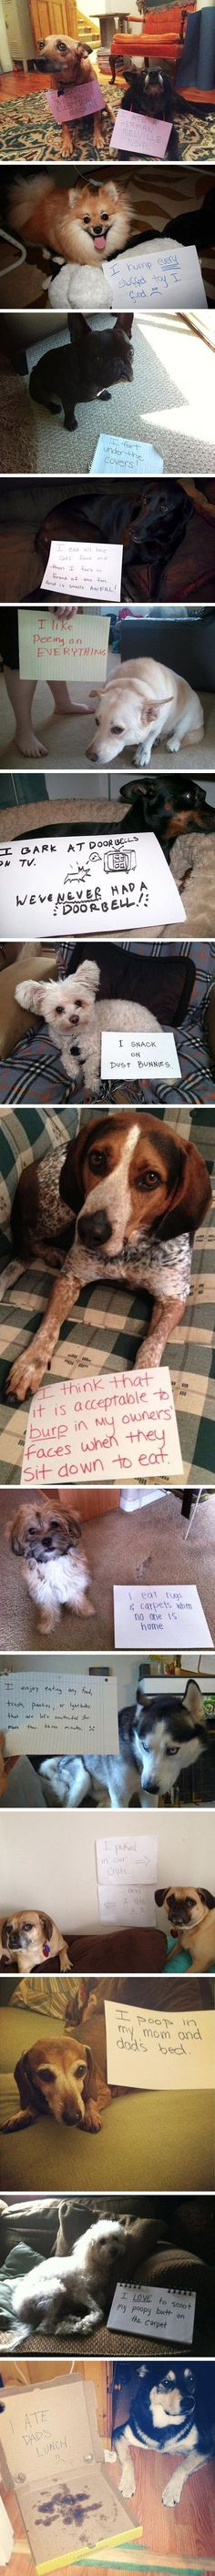 Dog shaming, they really didn't mean it!!